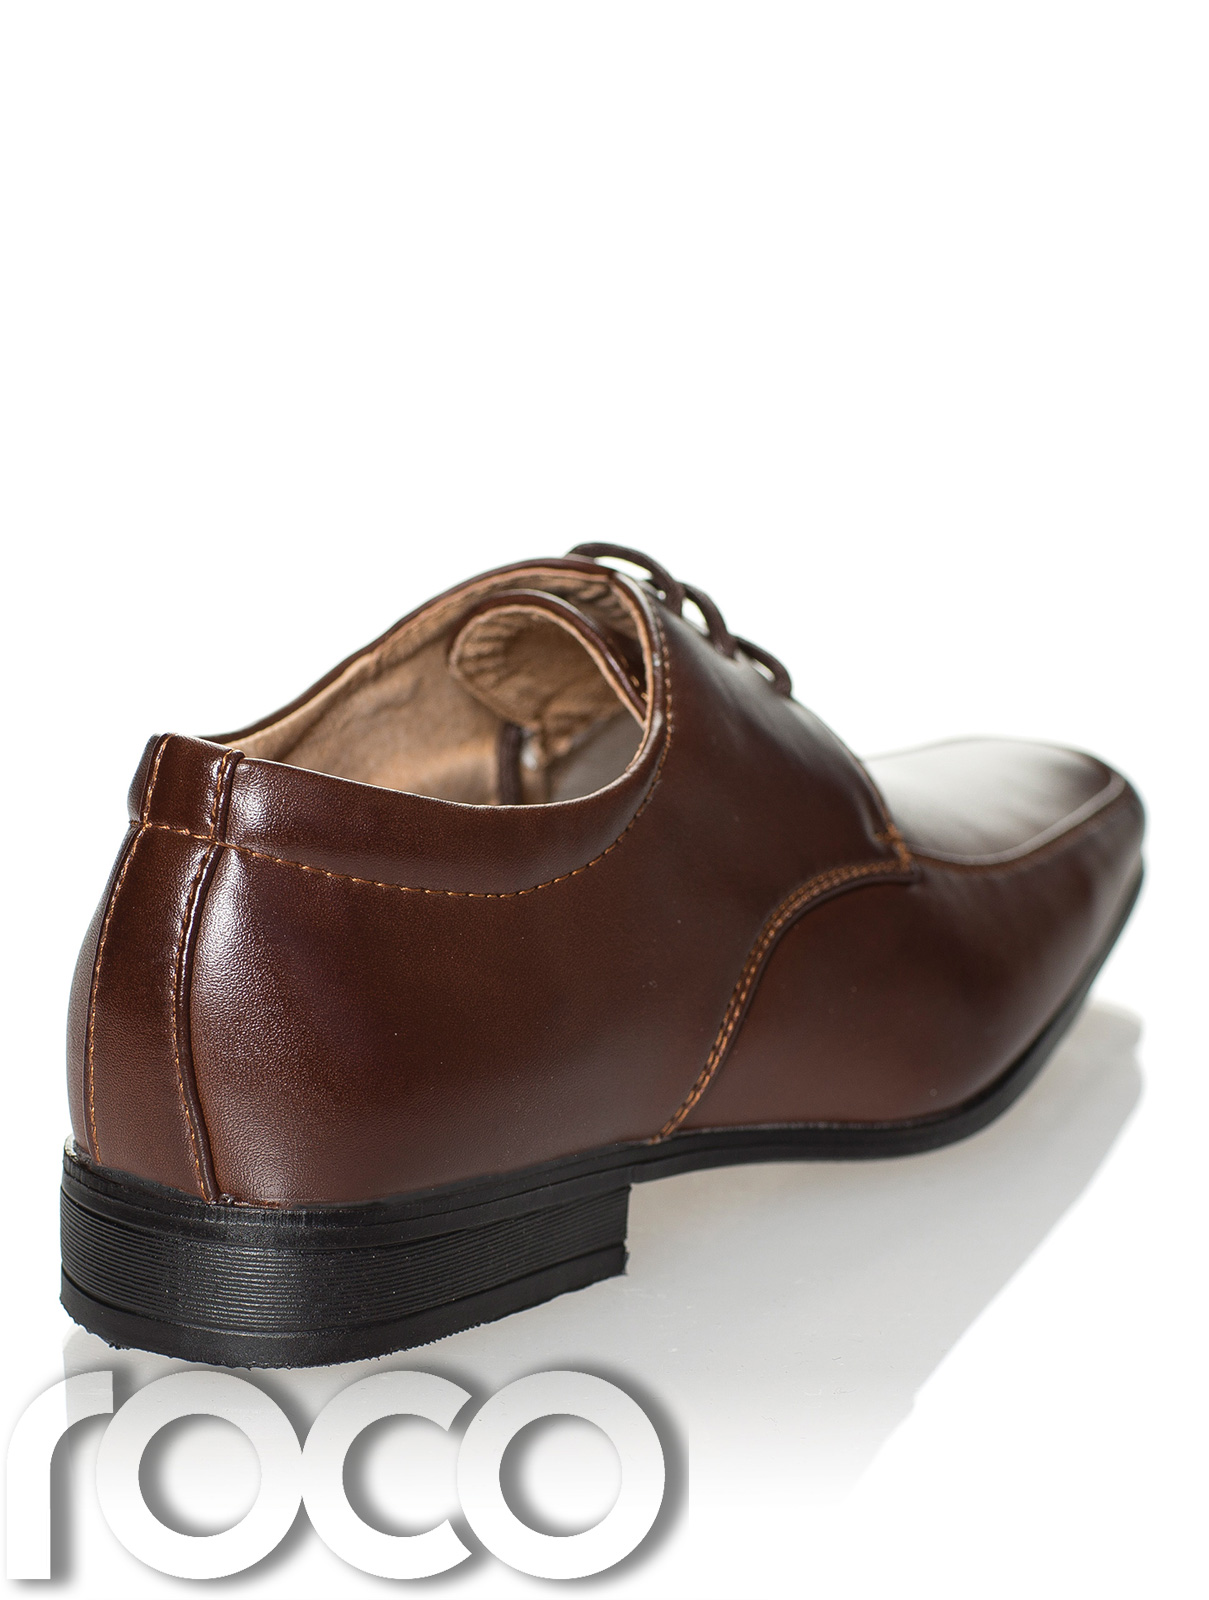 93c8771b20288f Boys dark brown formal shoes